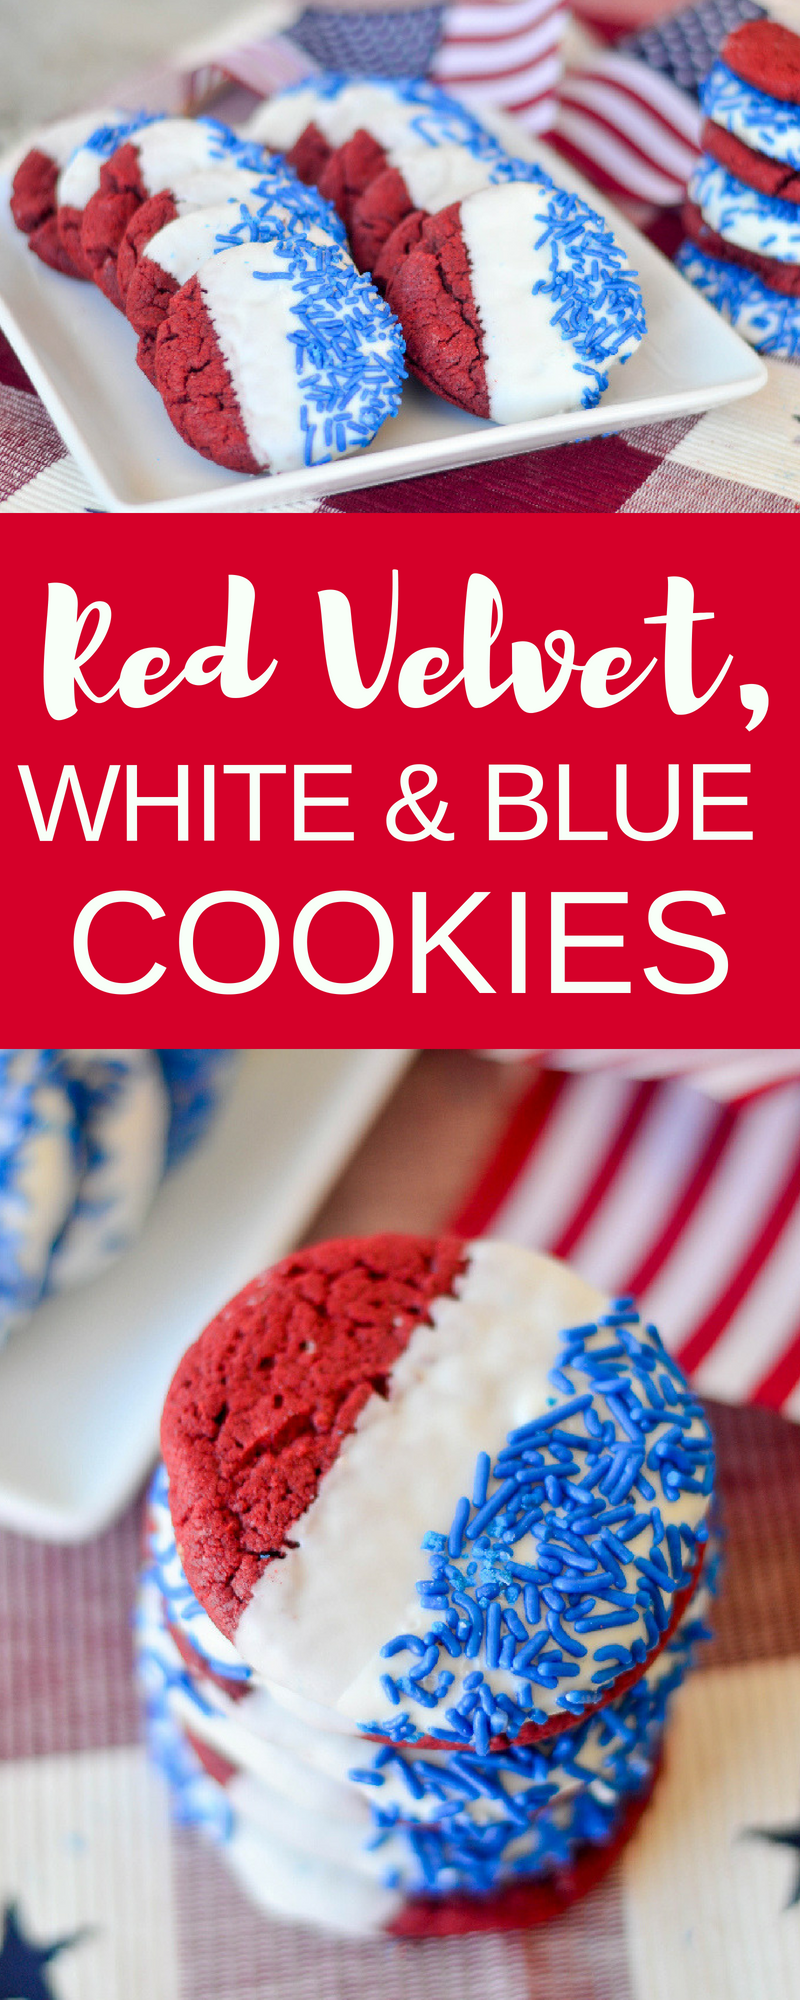 Red Velvet, White and blue cookies collage